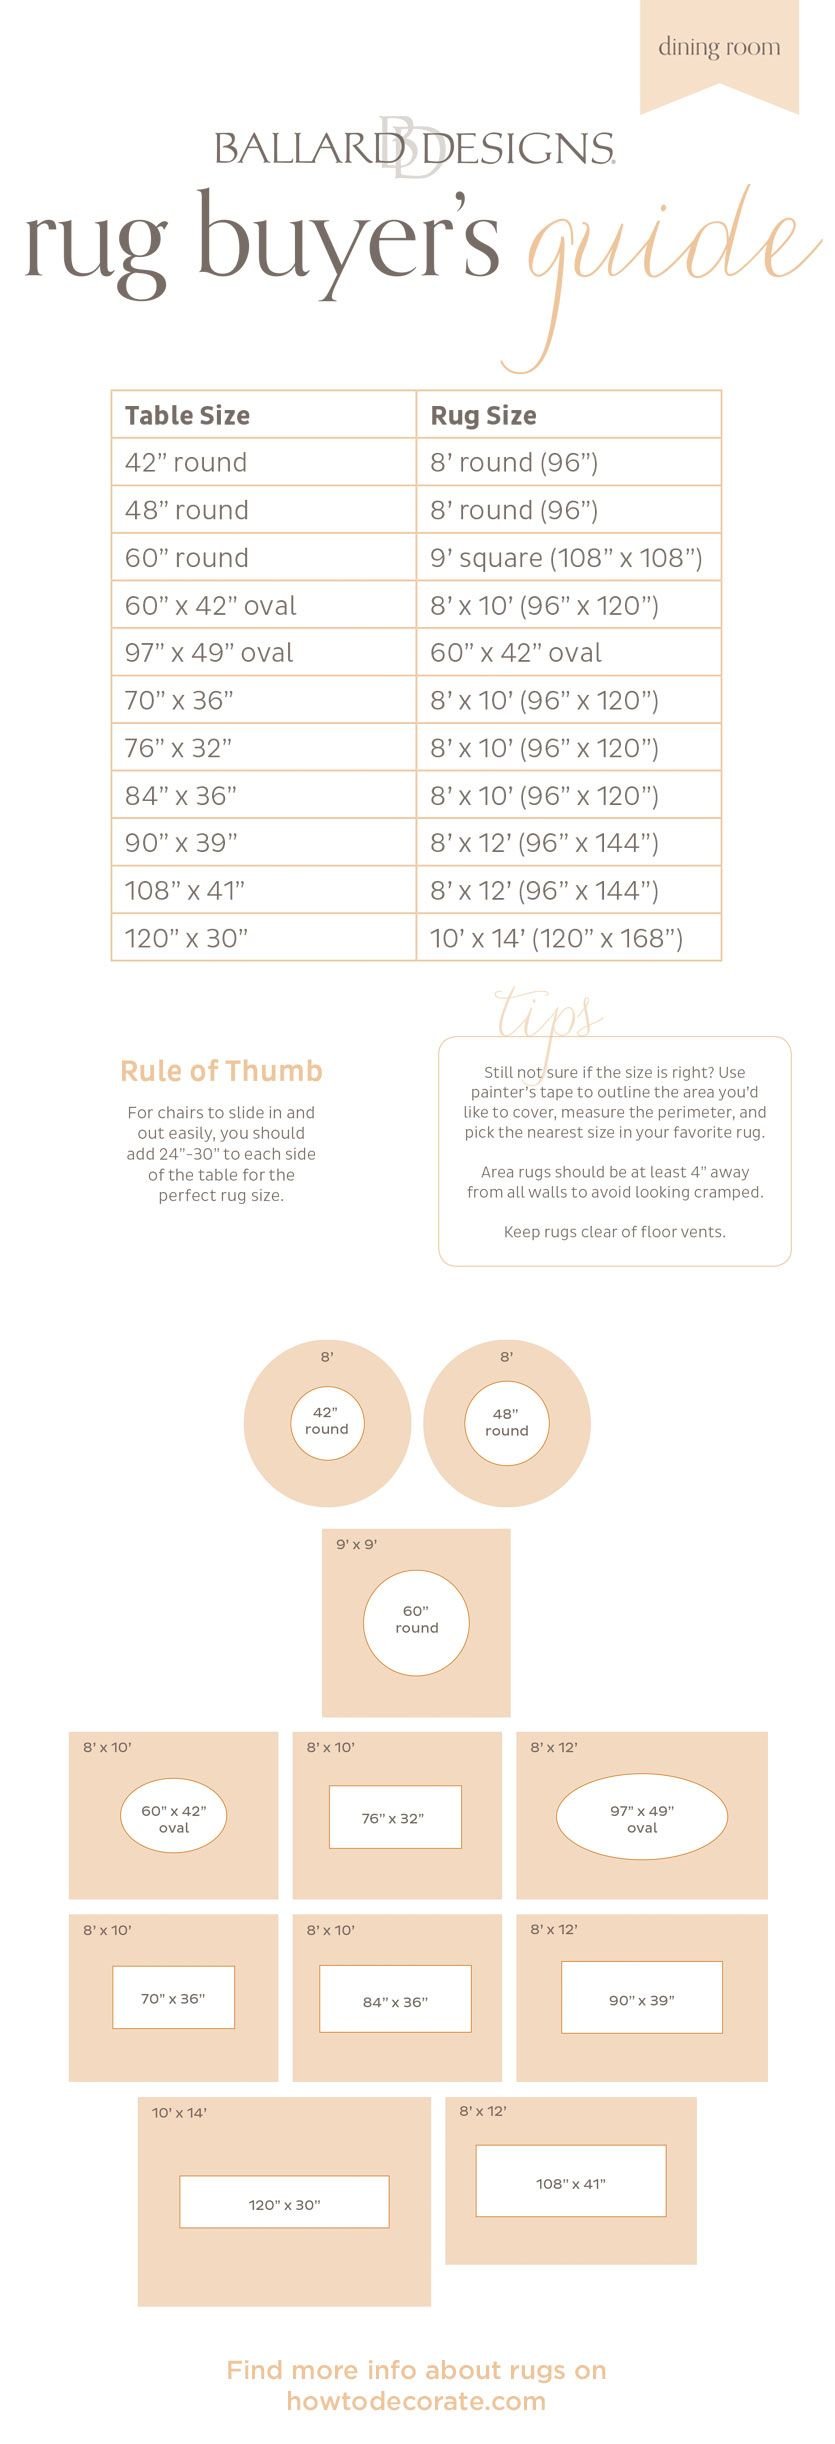 Rug Sizing Guide To Choosing A Rug Size Dining Room Ideas Room Rugs Rugs